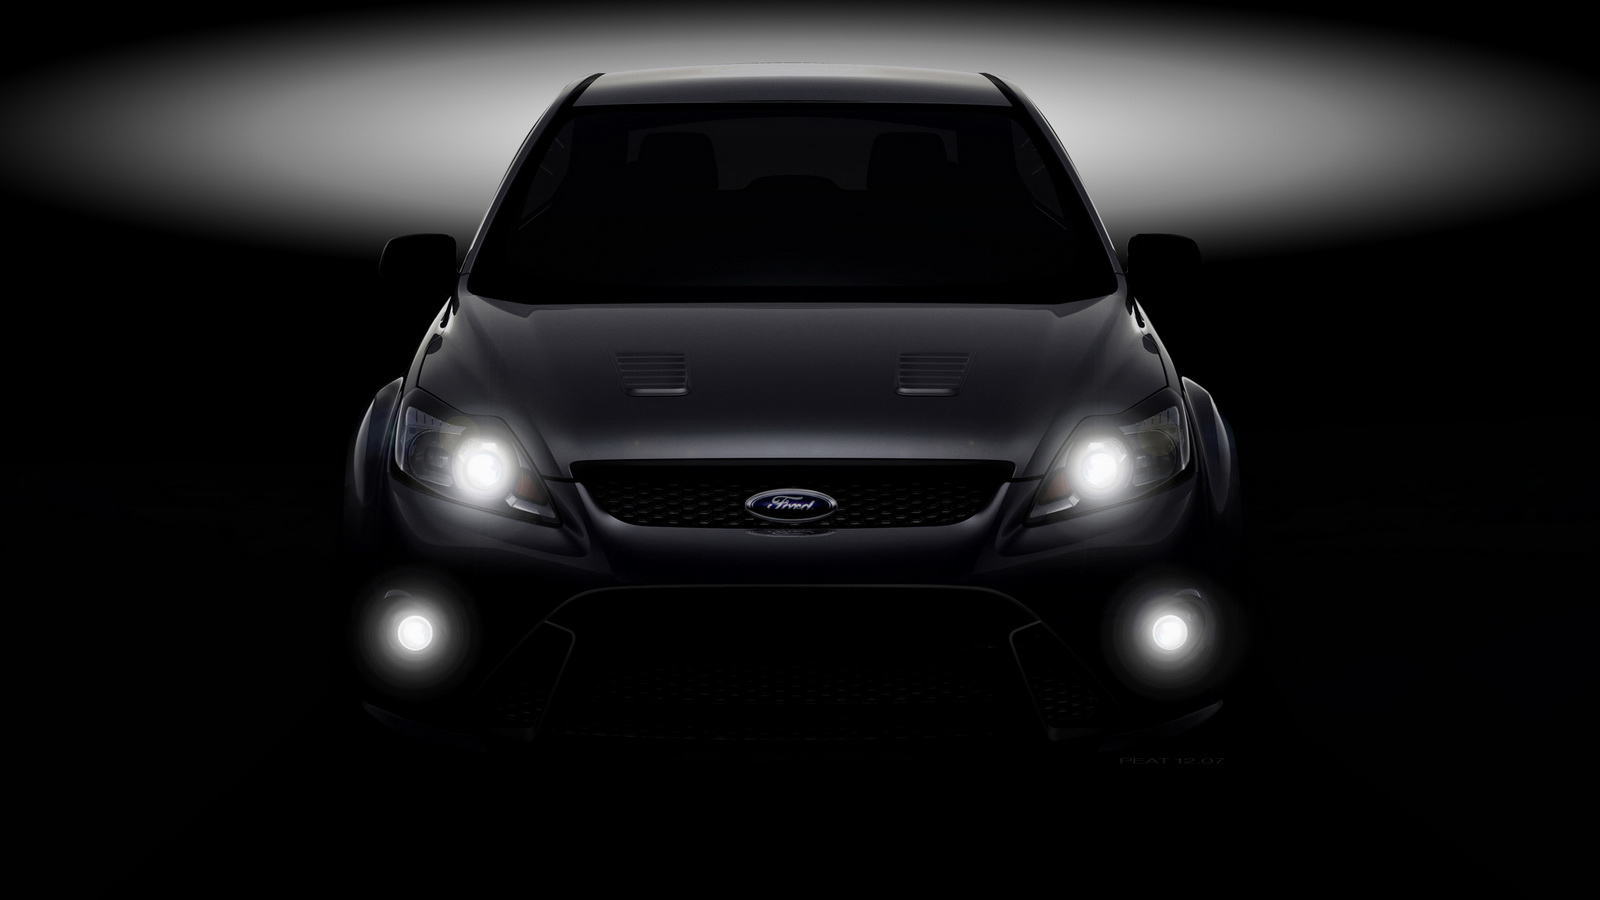 Focus Ford Wallpaper 22255 Wallpaper High Resolution Wallarthdcom 1600x900